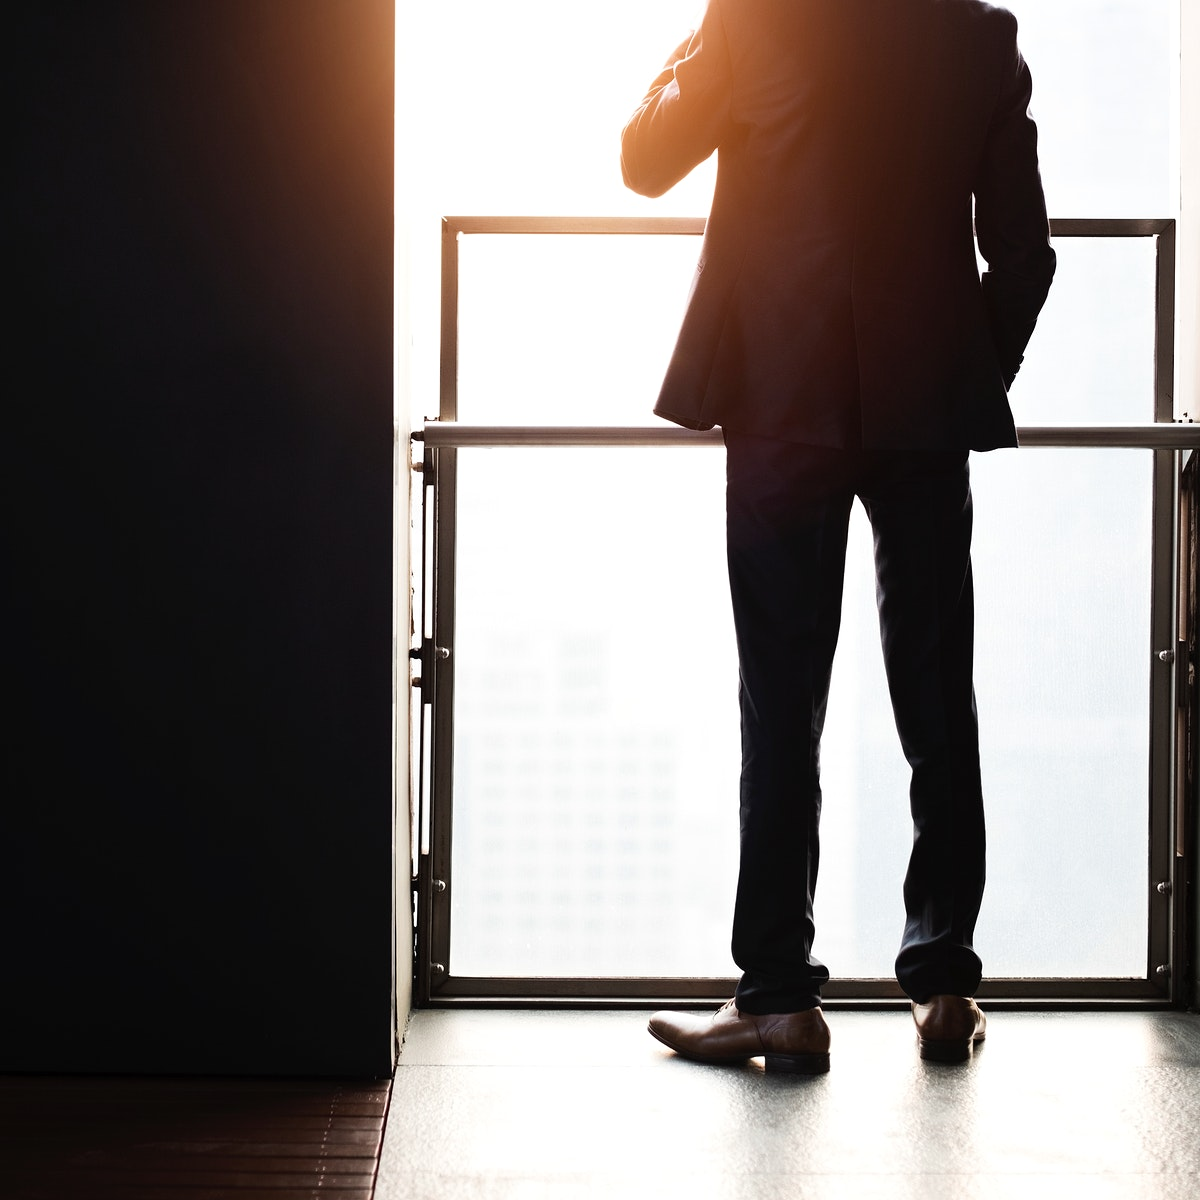 Rear view of businessman silhouette